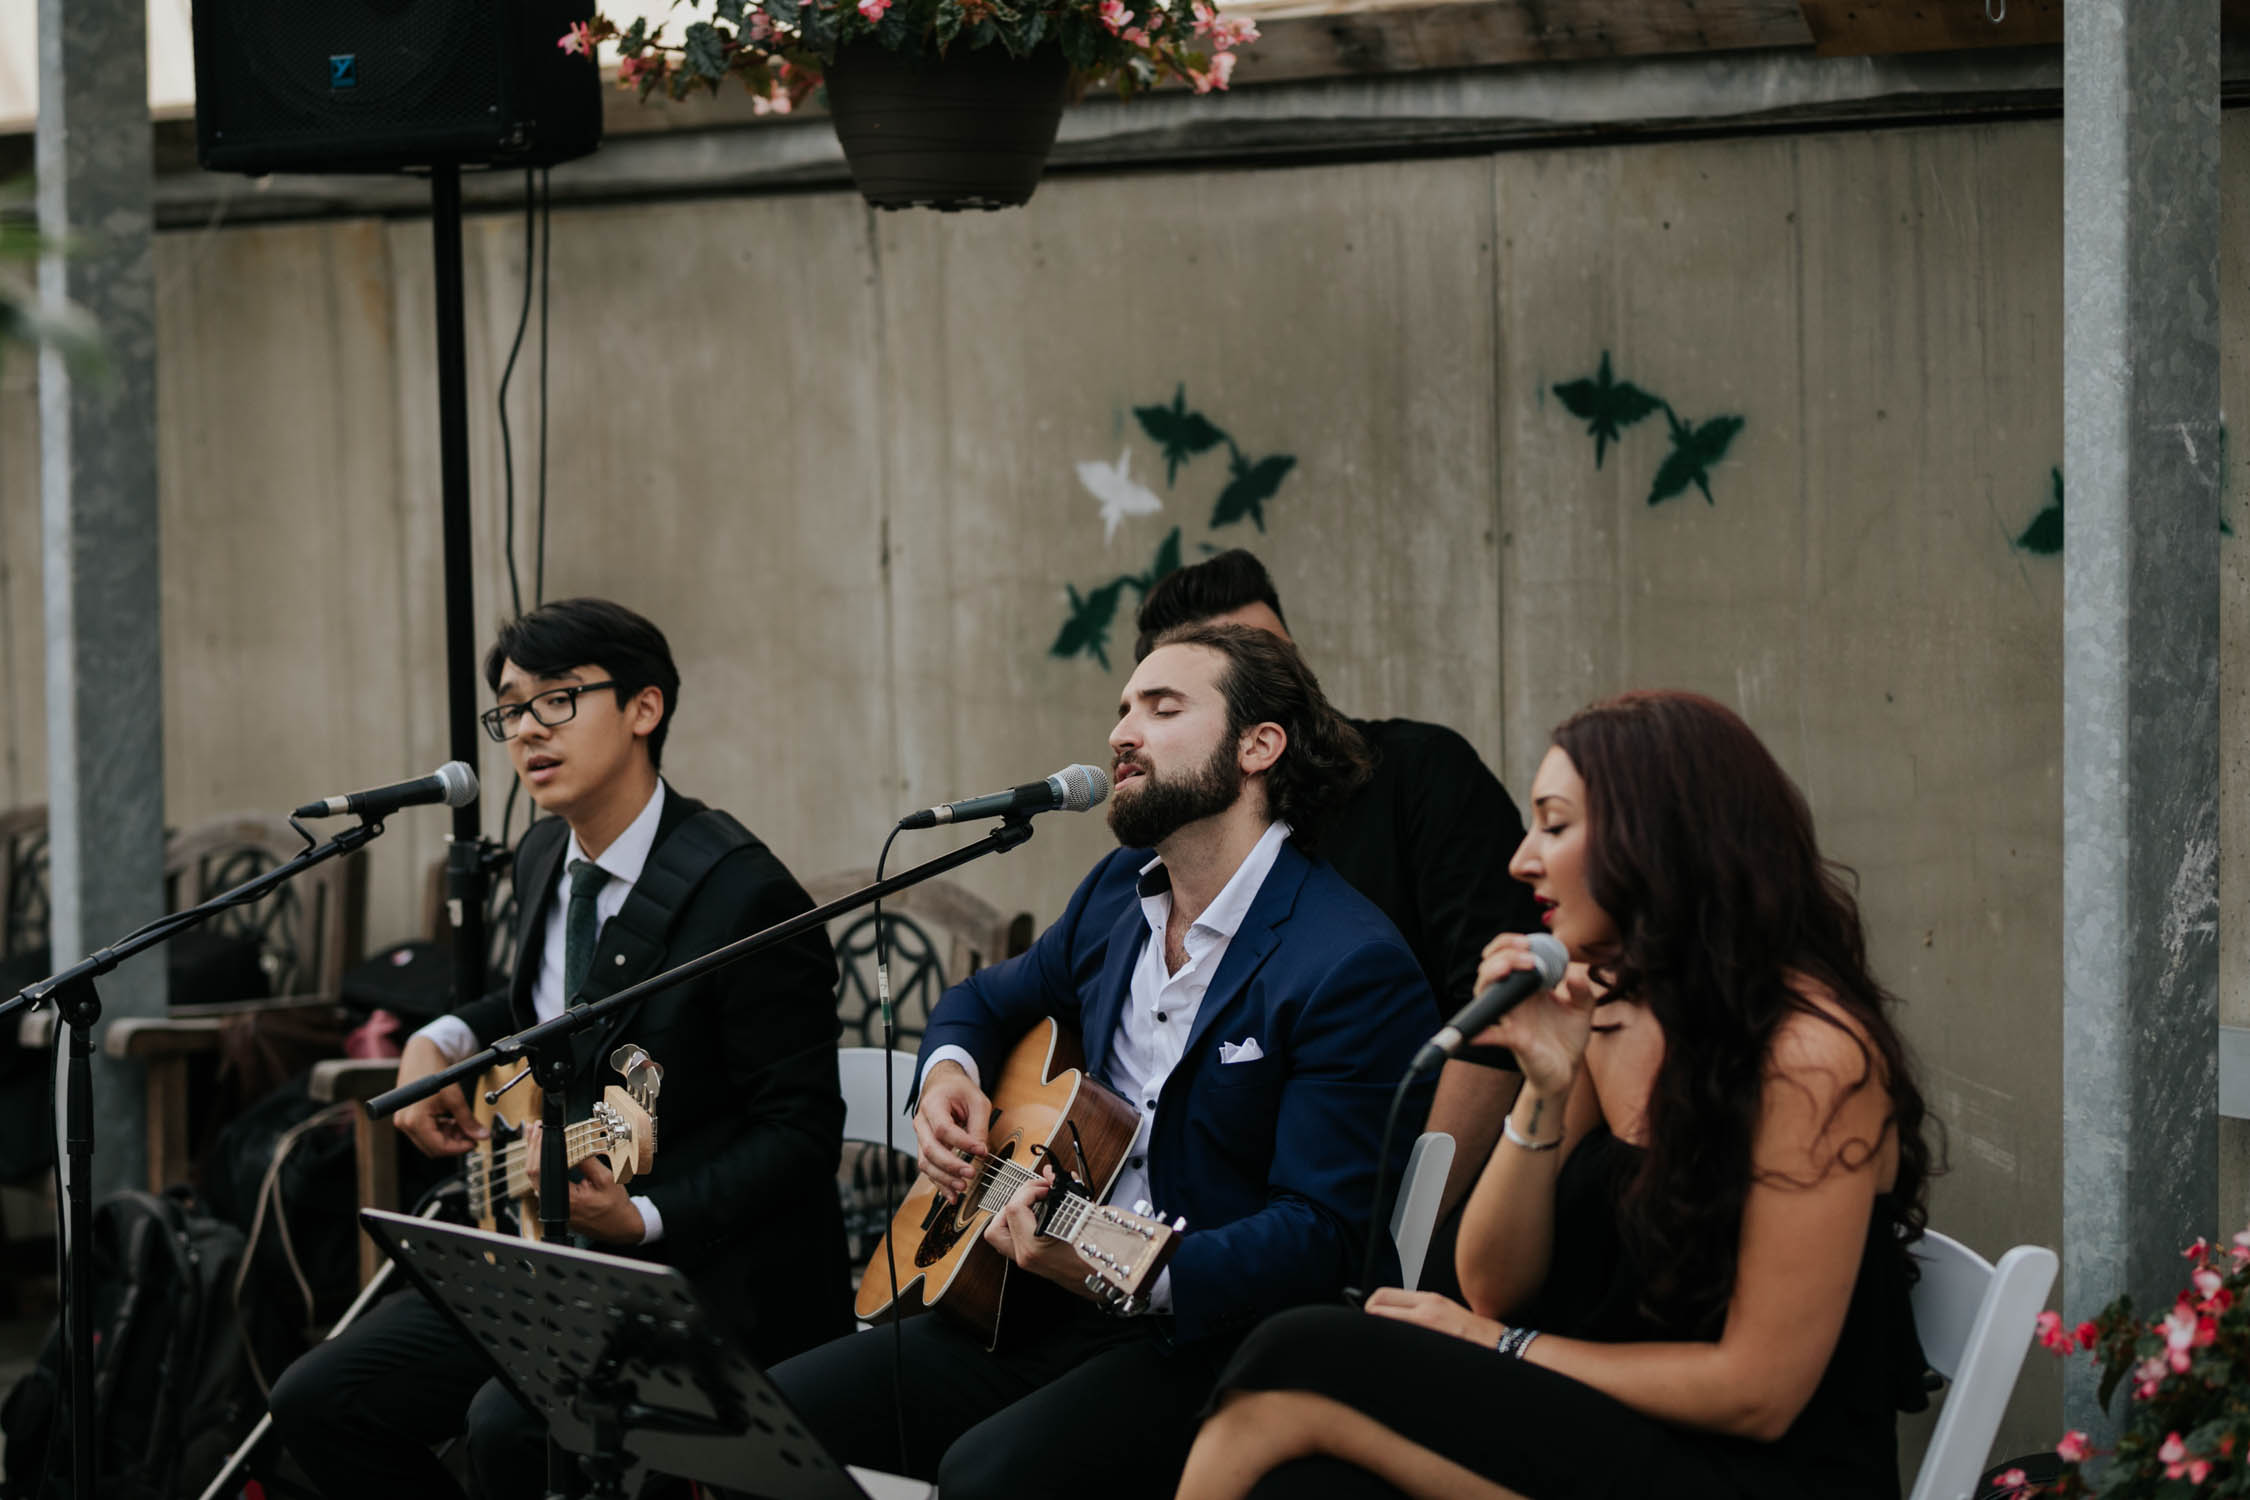 Luke Maxim, acoustic wedding band, sing during cocktail hour Candid and natural photographs of guests at Madsen's Greenhouse wedding venue in Newmarket close to Toronto